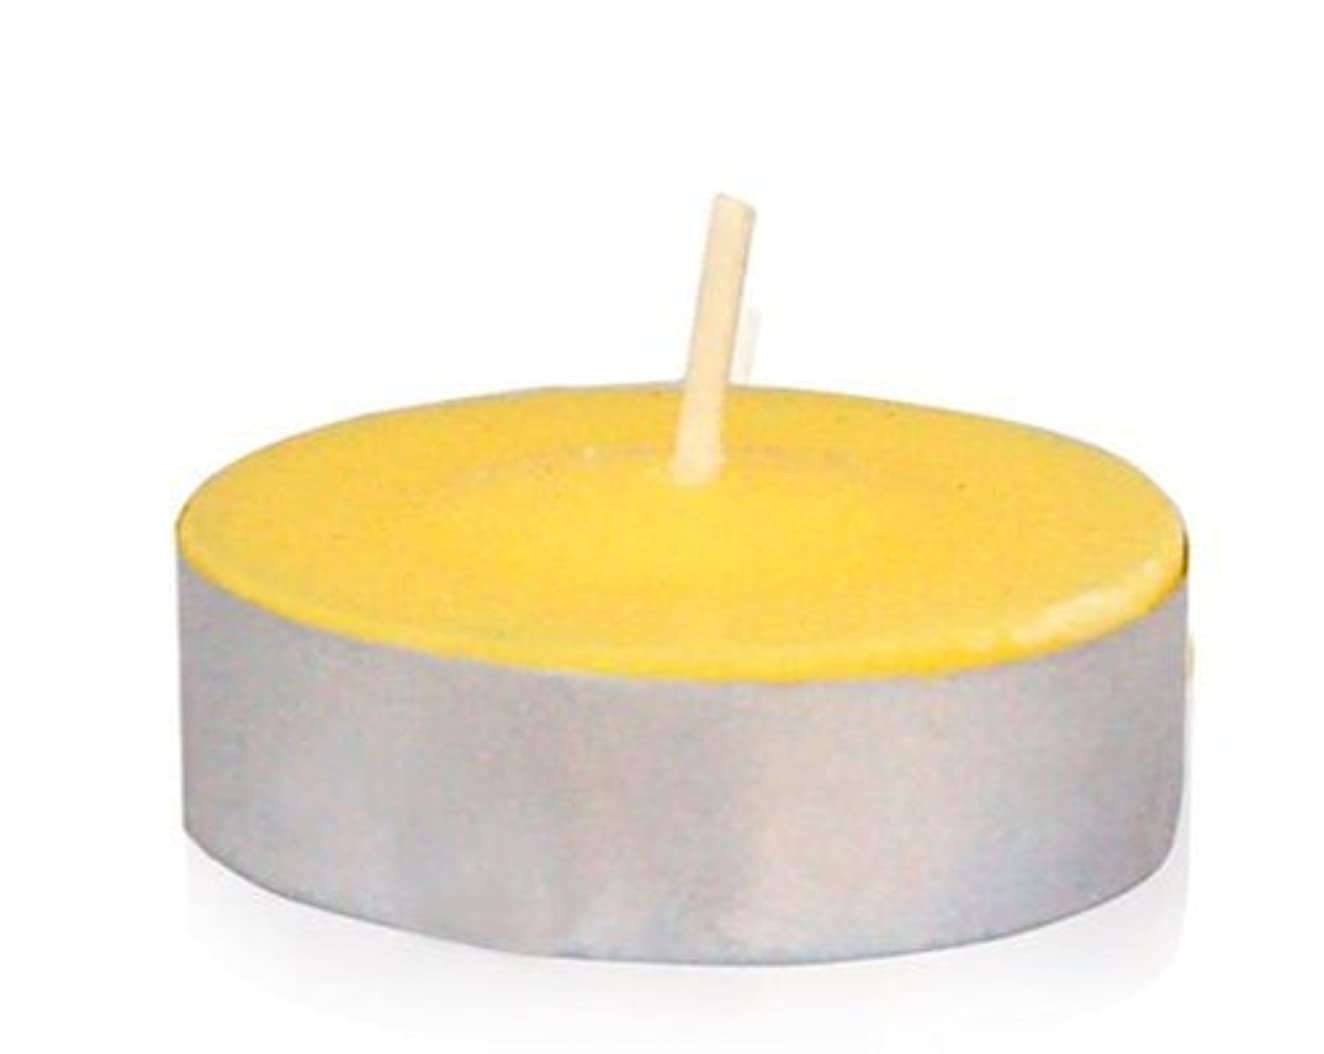 ログ急襲到着するZest Candle CTZ-009 Yellow Citronella Tealight Candles -100pcs-Box